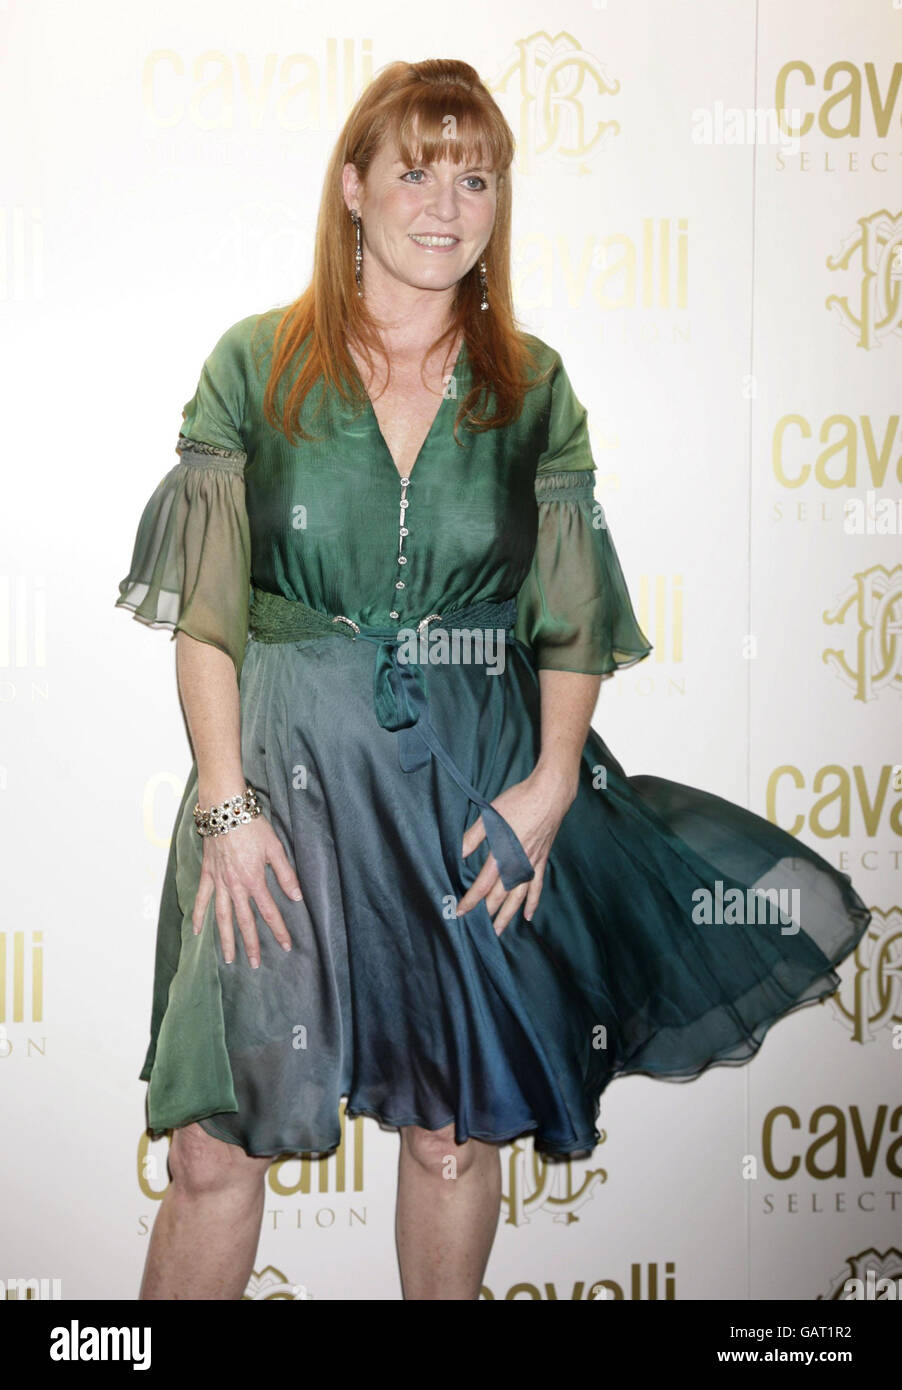 263ba0319c Roberto Cavalli launches new wine - London Stock Photo: 109937046 ...